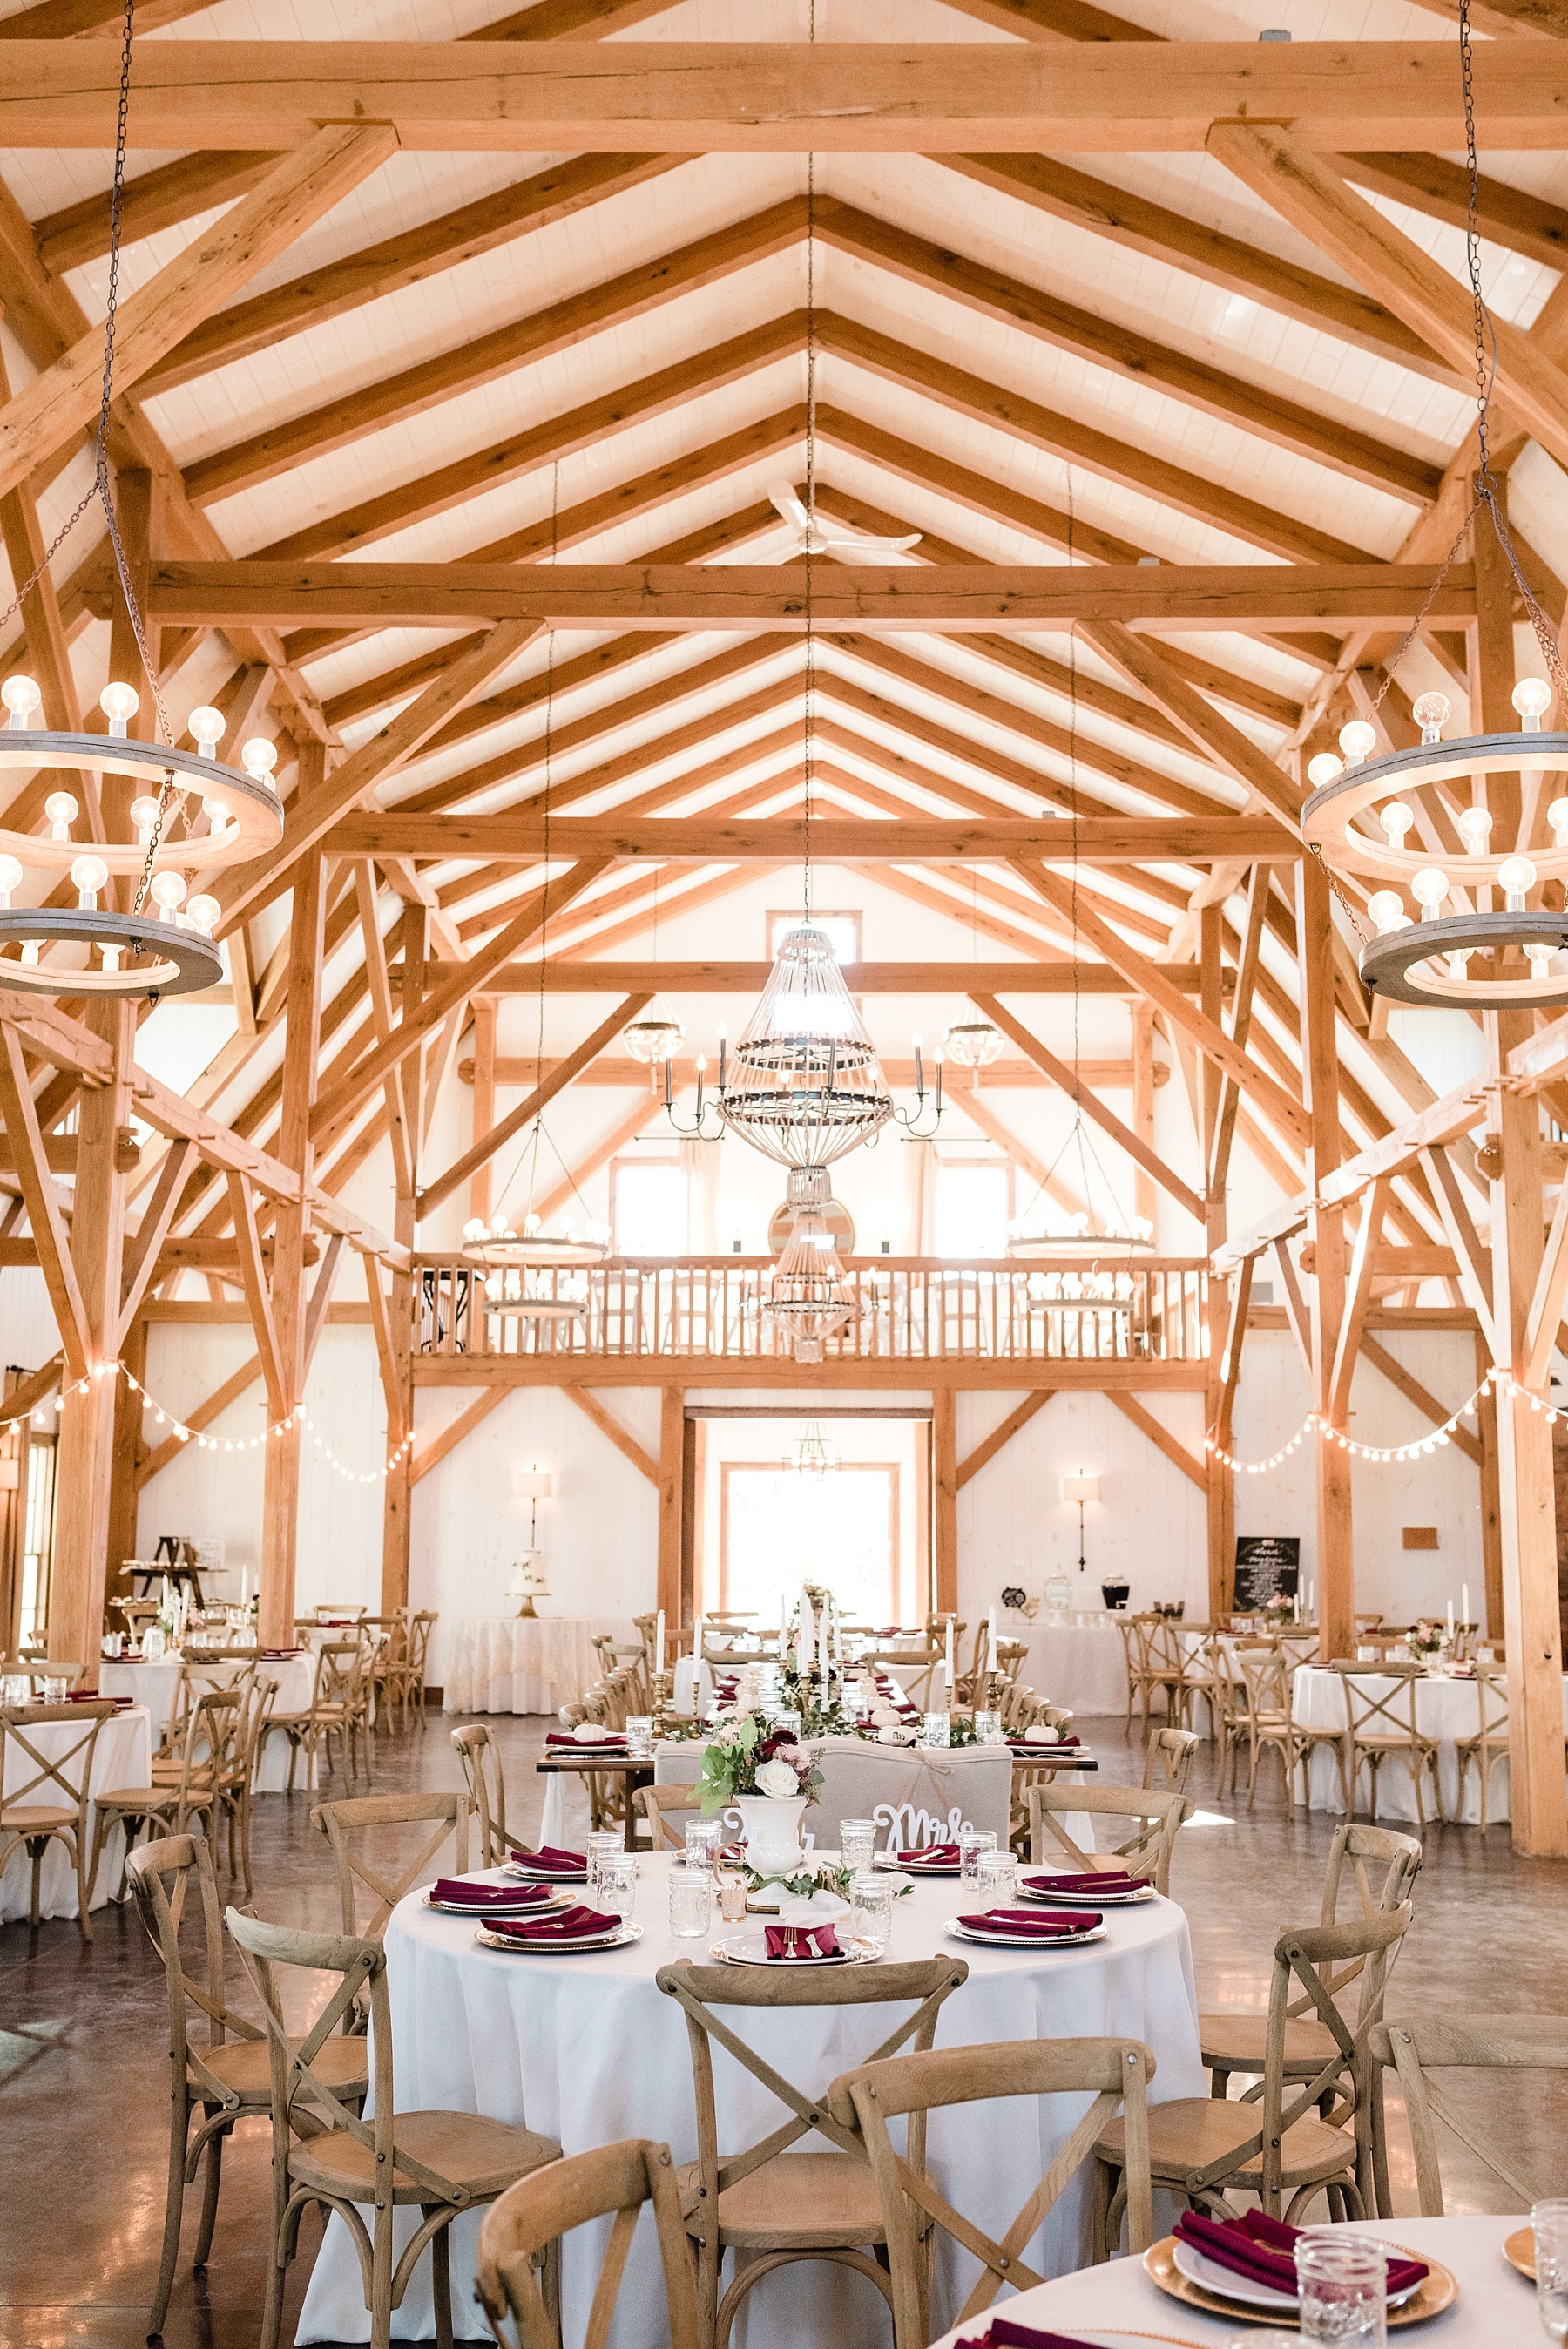 Golden Autumn Outdoor Wedding with Ivory, Bergundy, and Blush Color Palette at Blue Bell Farms  by Kelsi Kliethermes Photography_0060.jpg